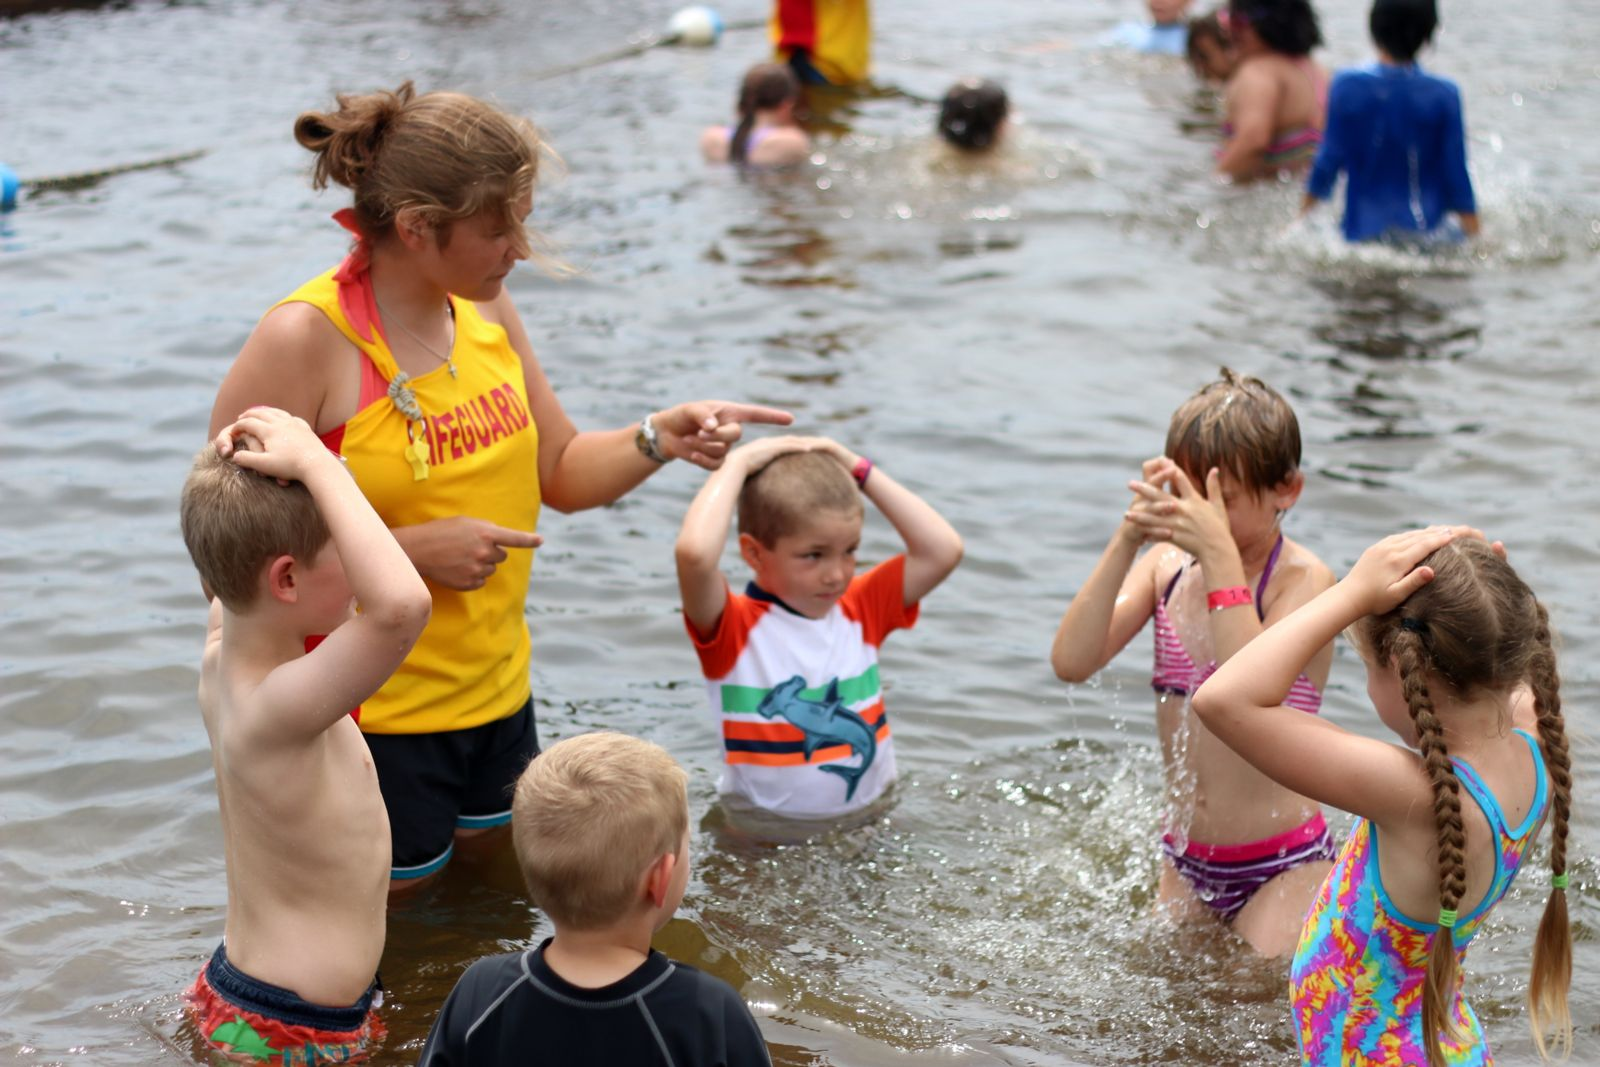 Children partaking in swimming lessons at the waterfront